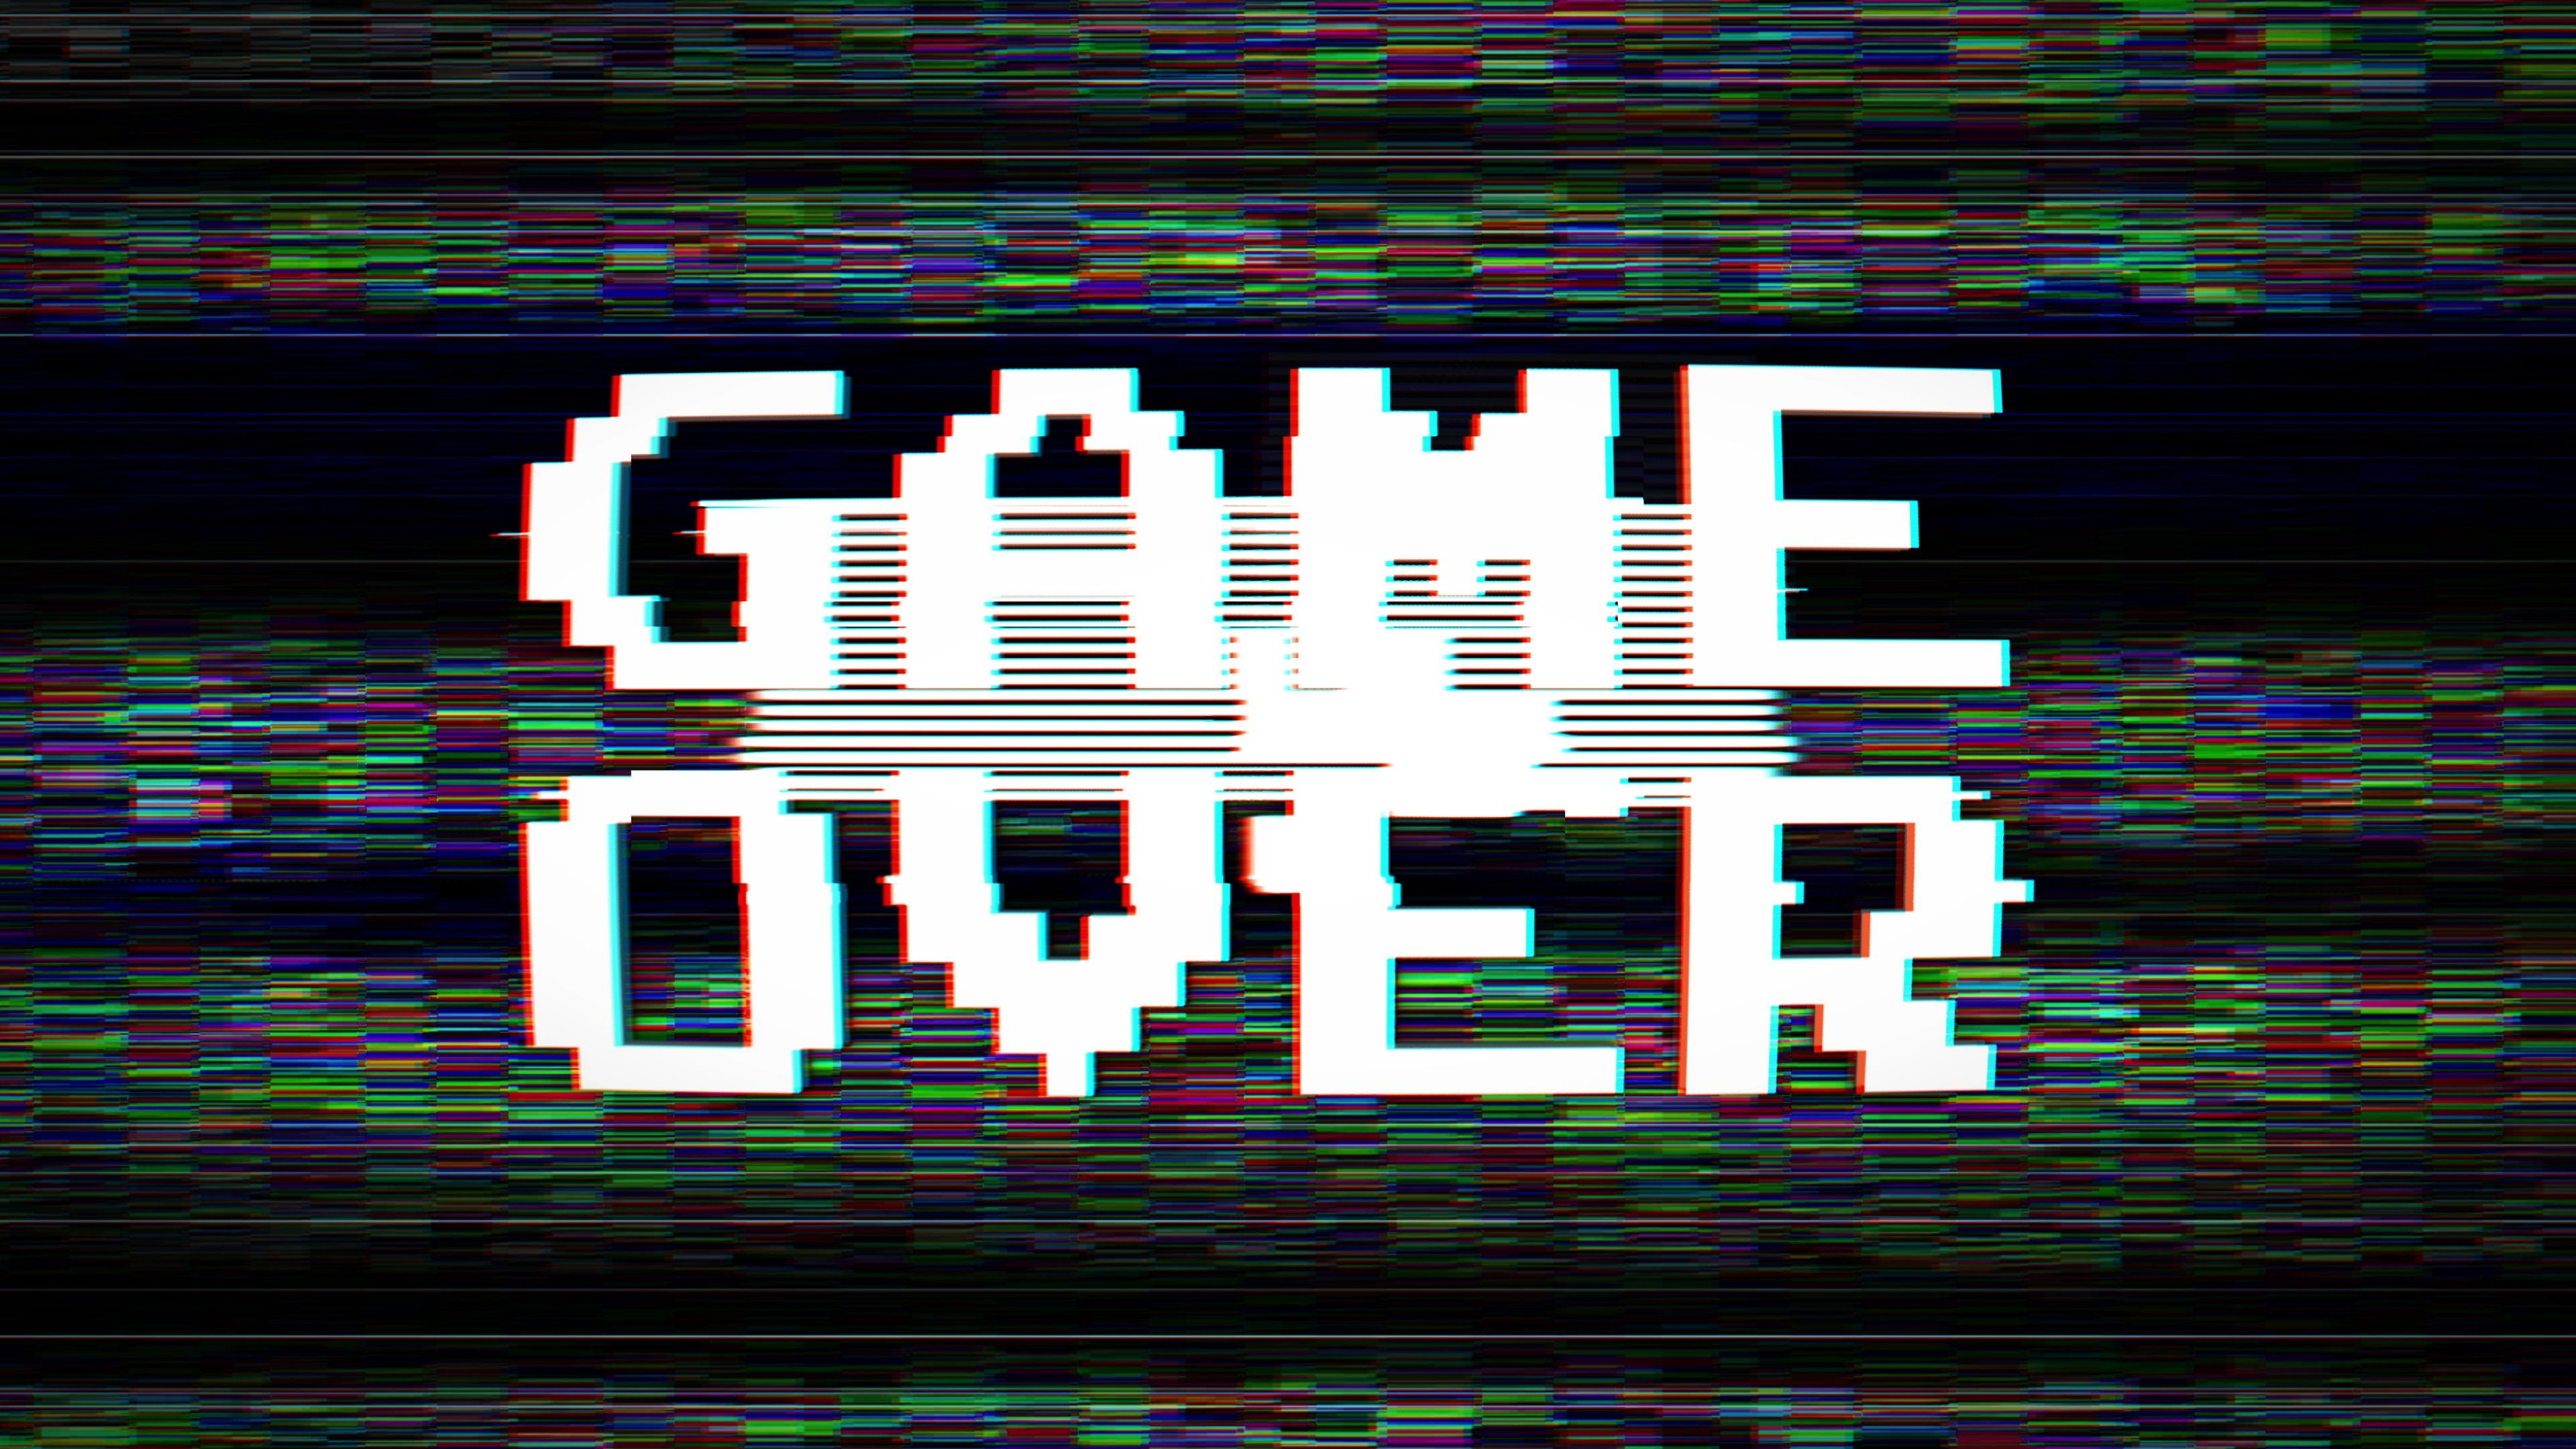 Game Over Glitch Text Animation 3 Versions With Alpha Channel Stock Footage Text Animation Game Glitch Glitch Text Text Animation Glitch